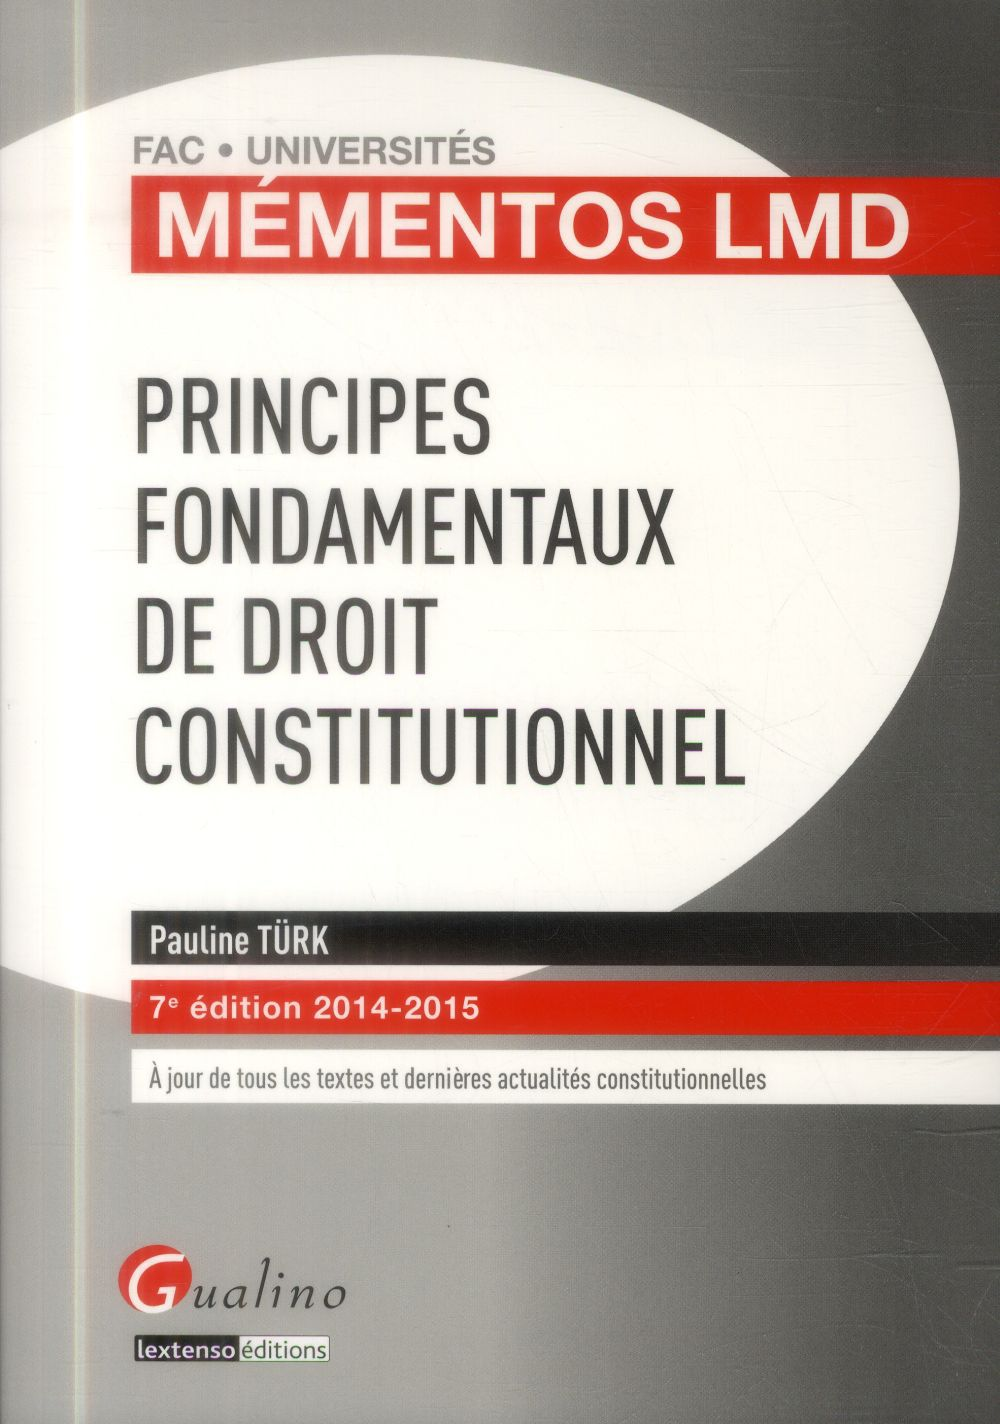 Pauline Turk Principes fondamentaux de droit constitutionnel ; 2014-2015 (7e édition)